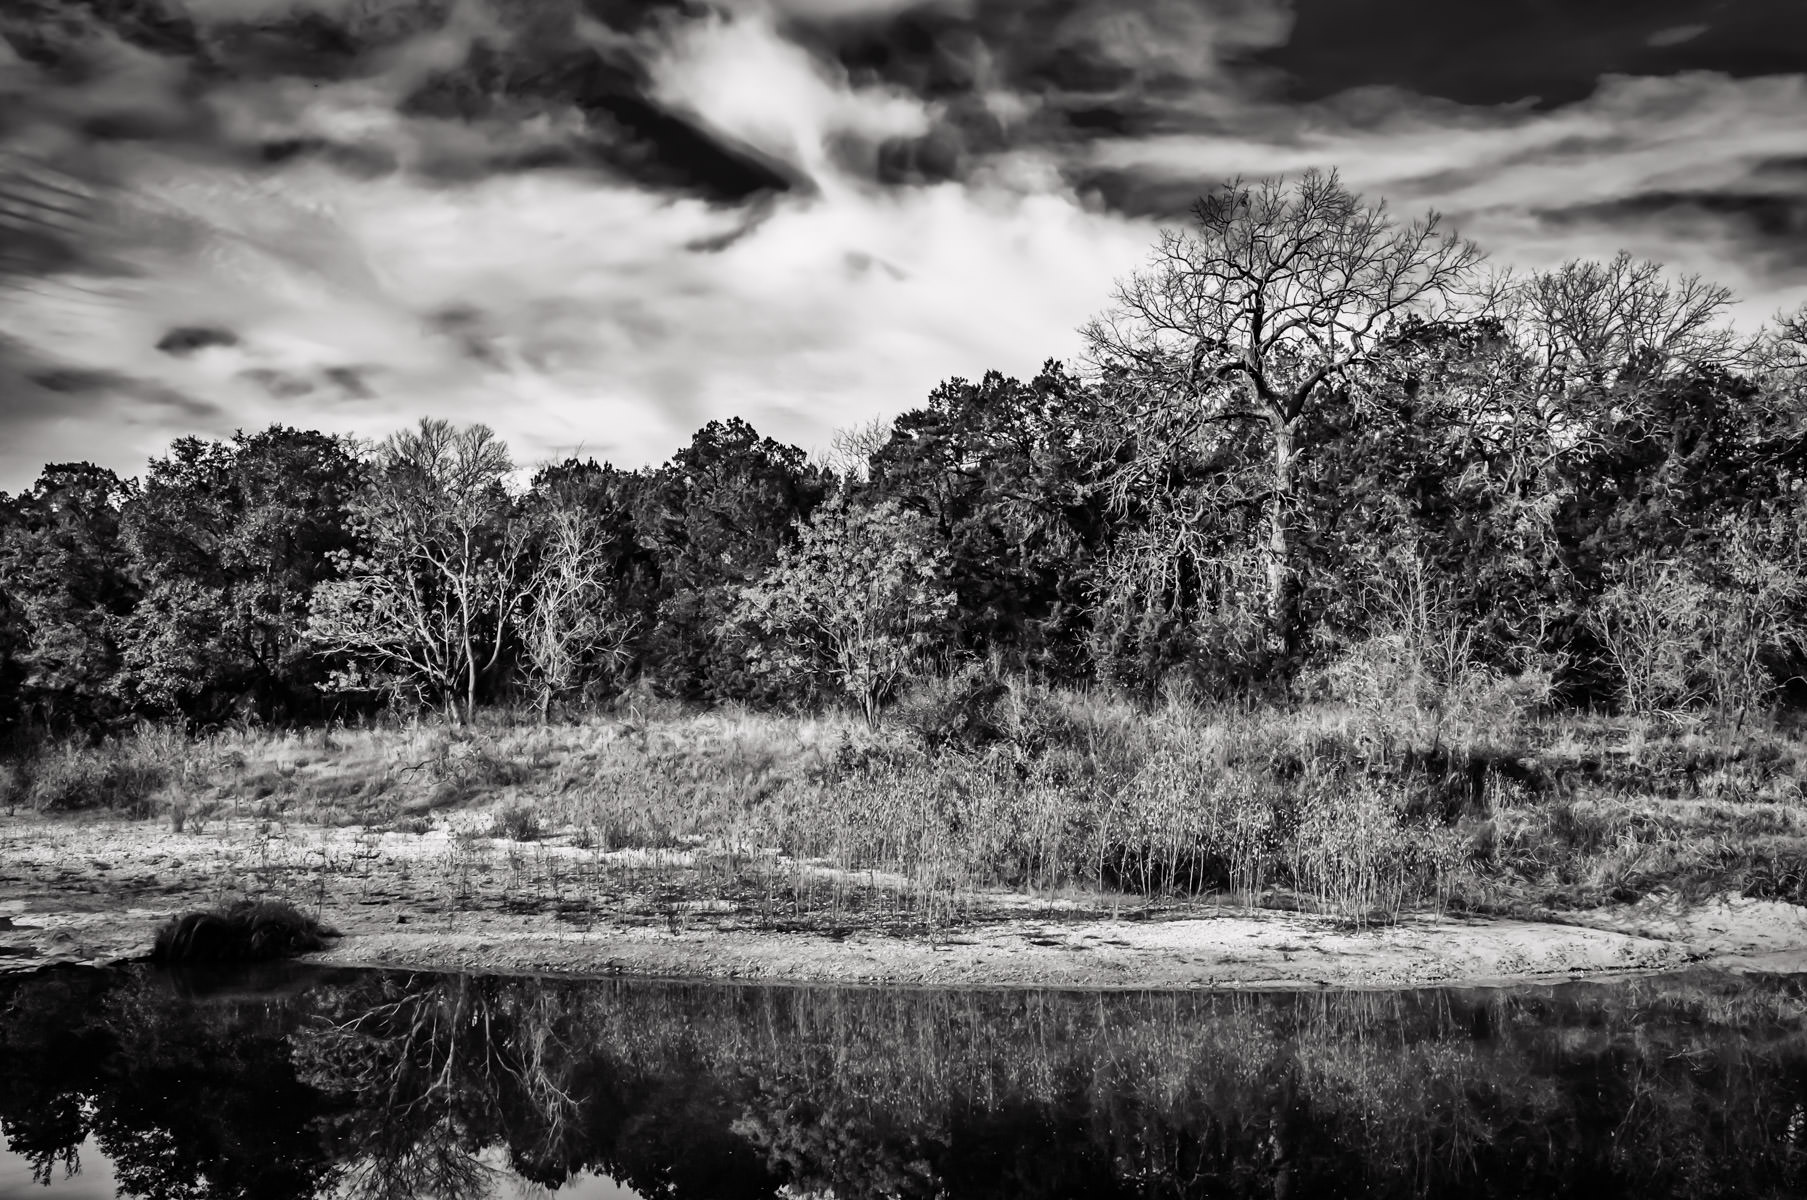 Trees grow along the shore of the Paluxy River in Texas' Dinosaur Valley State Park.